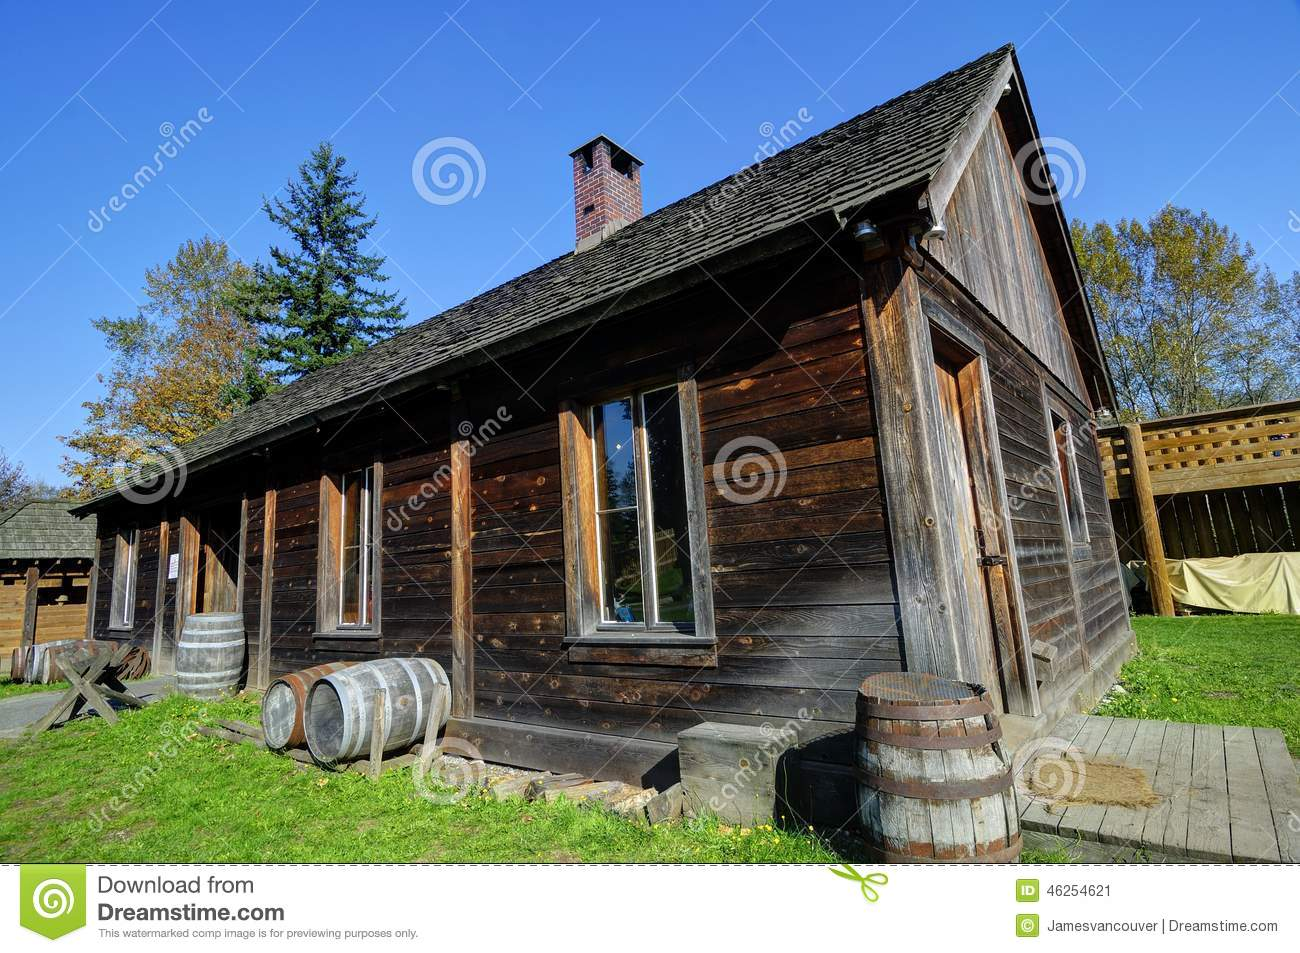 Traditional canadian rural house from old times stock for Old traditional houses